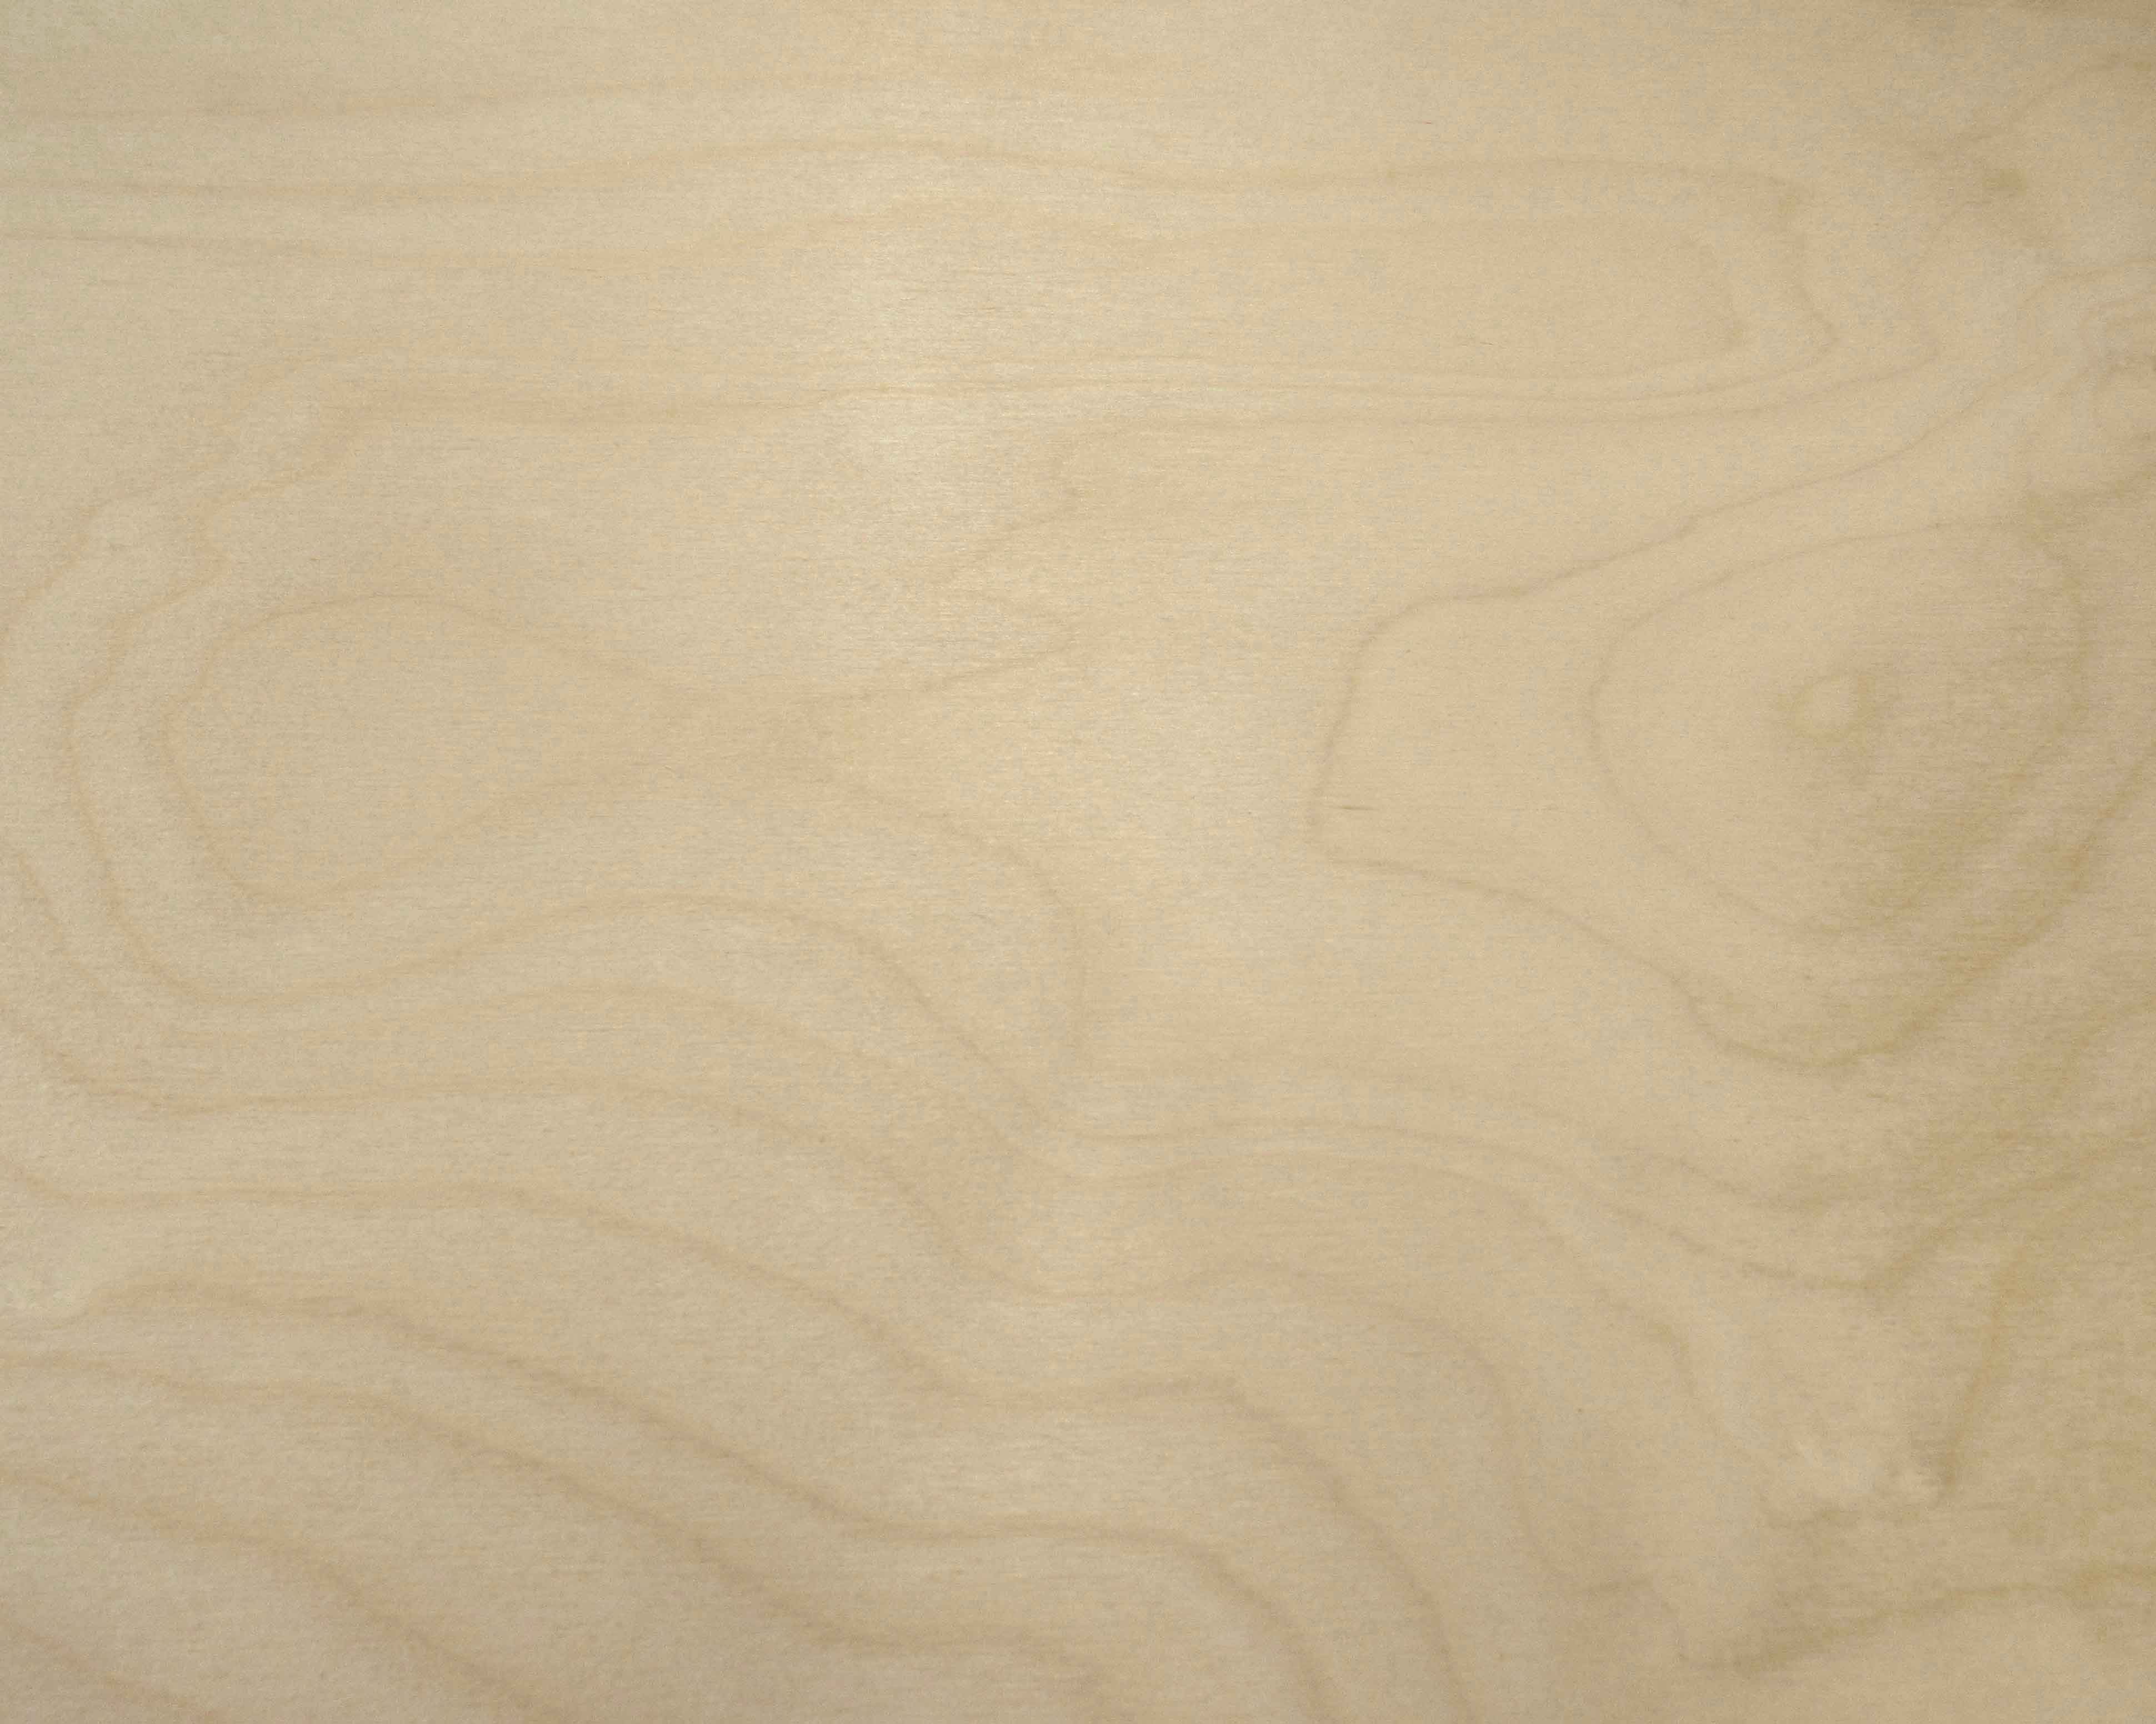 Baltic Birch Plywood Texture